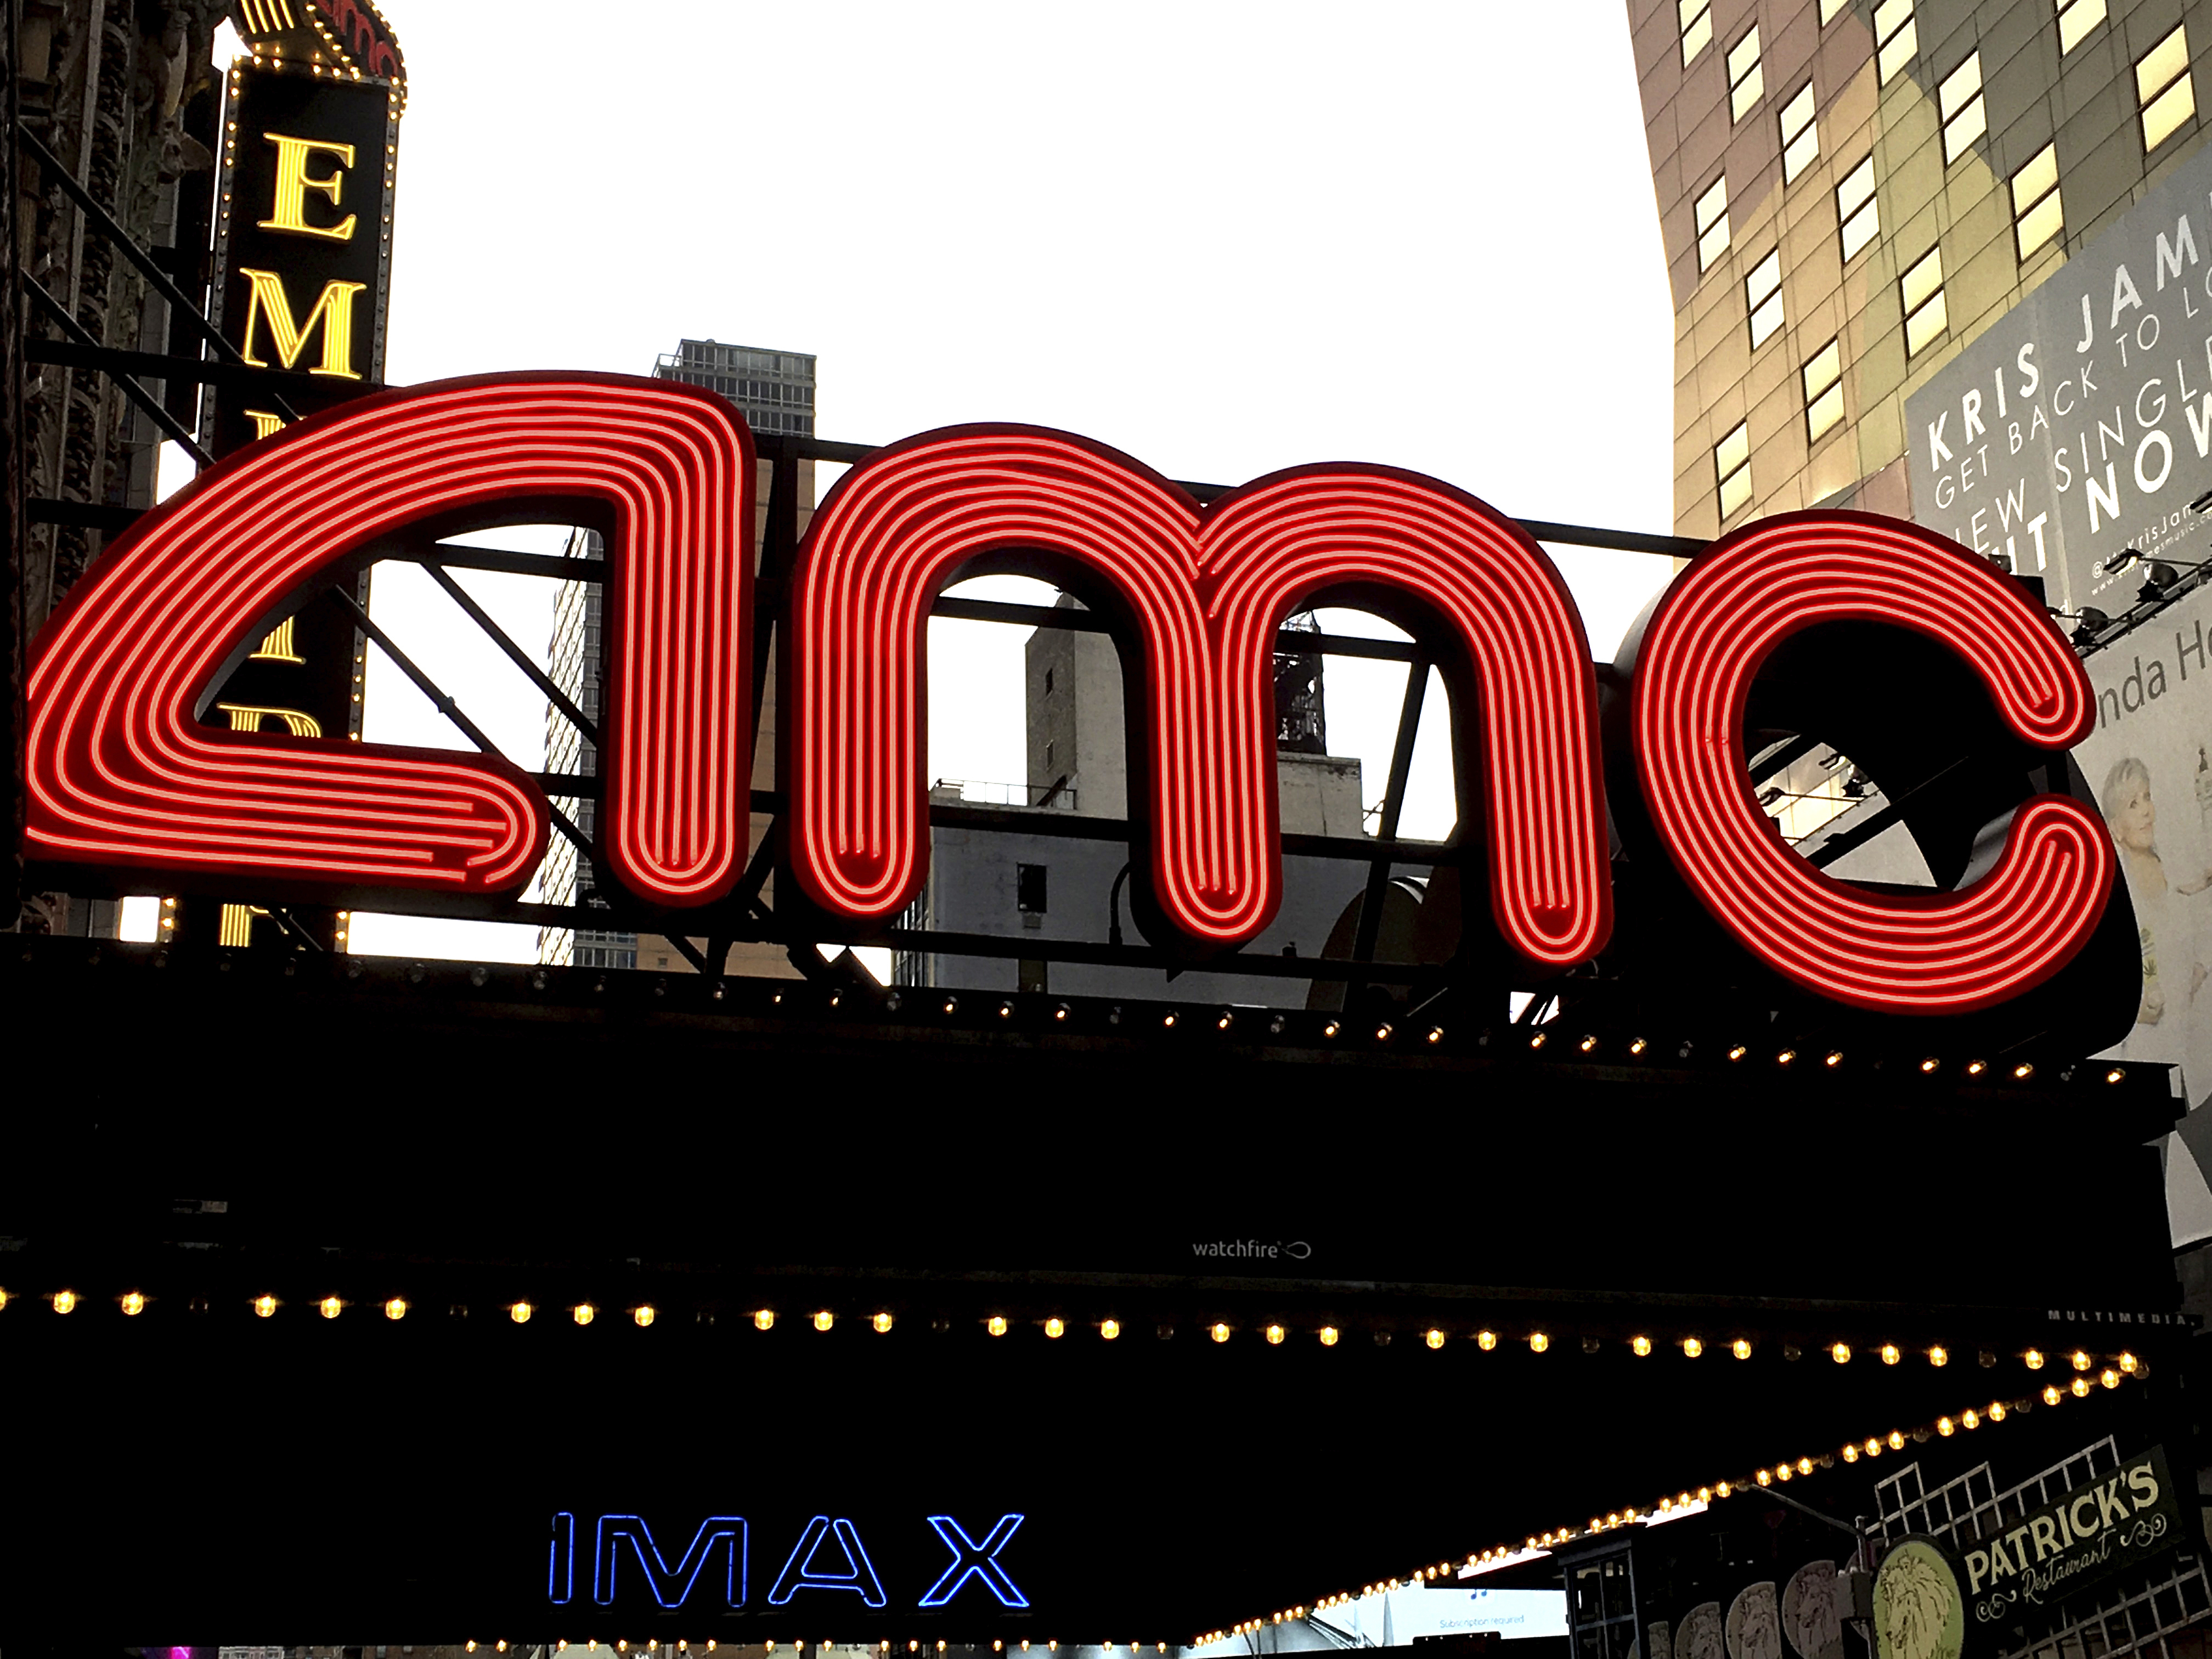 Photo by: STRF/STAR MAX/IPx 2021 1/19/21 AMC Entertainment shares soared more than 30% today after announcing a secured debt deal.